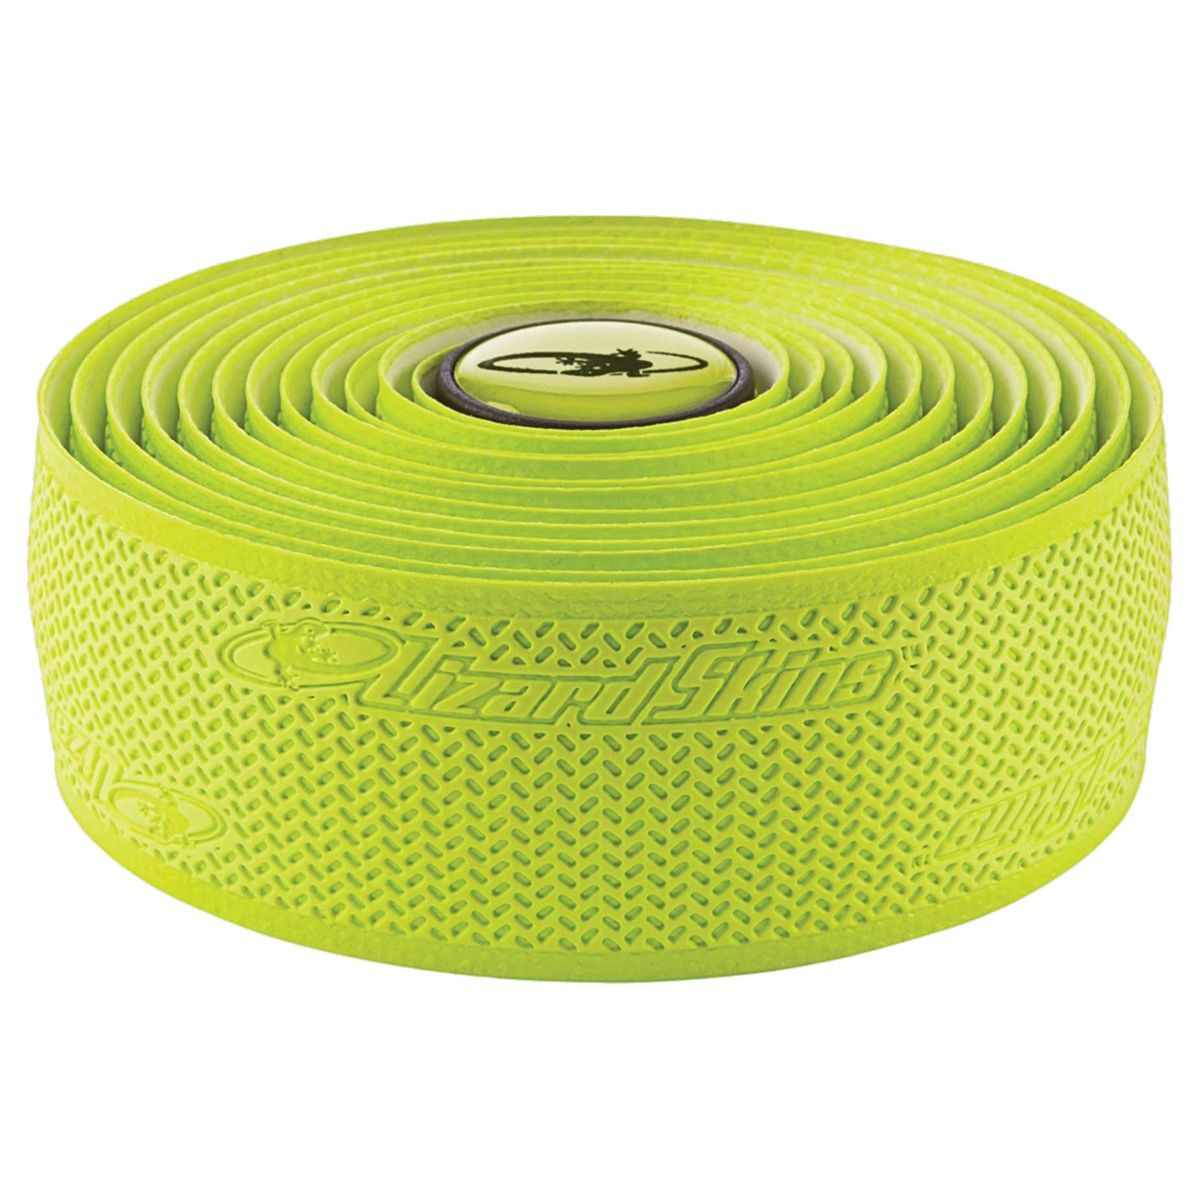 DSP 2,5 mm handlebar tape Road